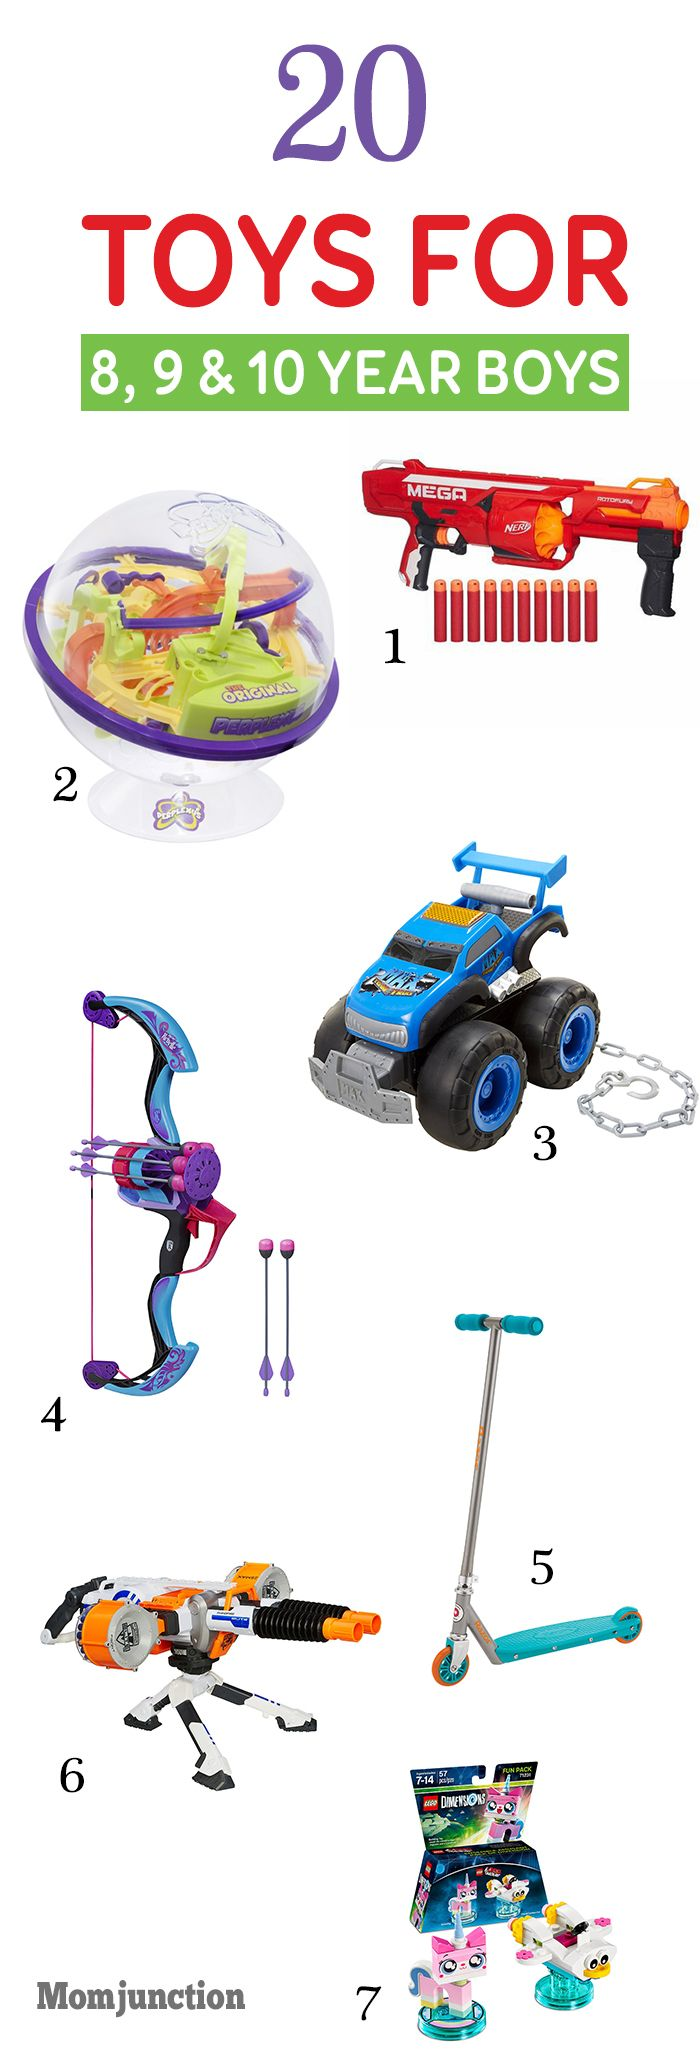 19 Perfect Toys For 8, 9, And 10-Year-Old Boys | Kids | Old boys, 10 ...